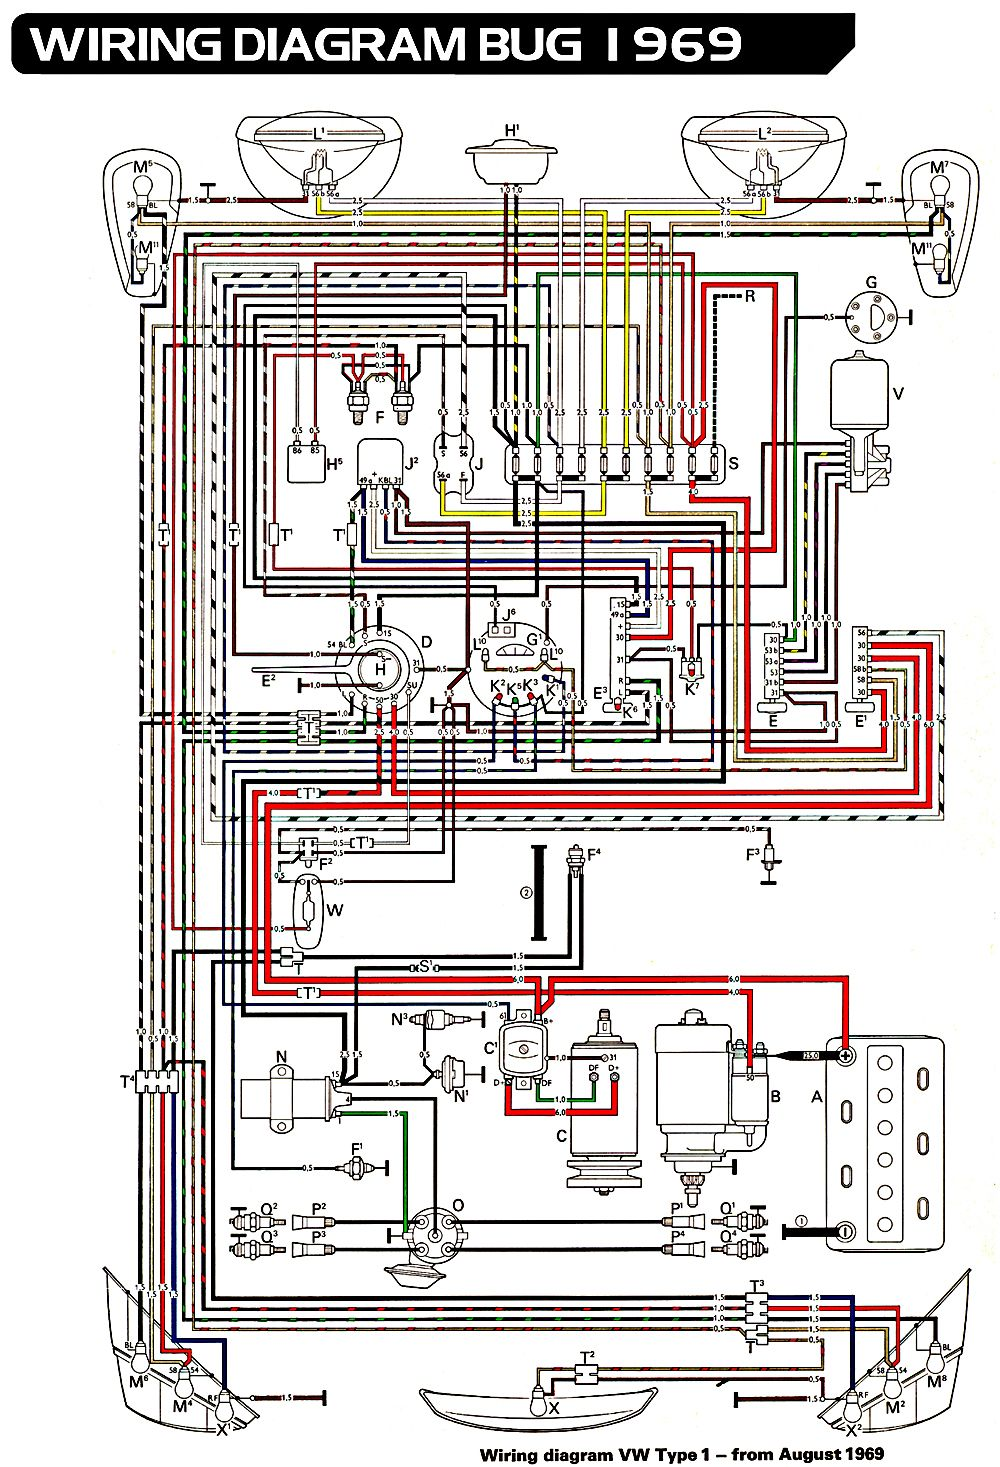 6d75c15875479254f26a32a8499d9044 volkswagen beetle wiring diagram 1966 vw beetle wiring 1974 vw beetle wiring diagram at virtualis.co